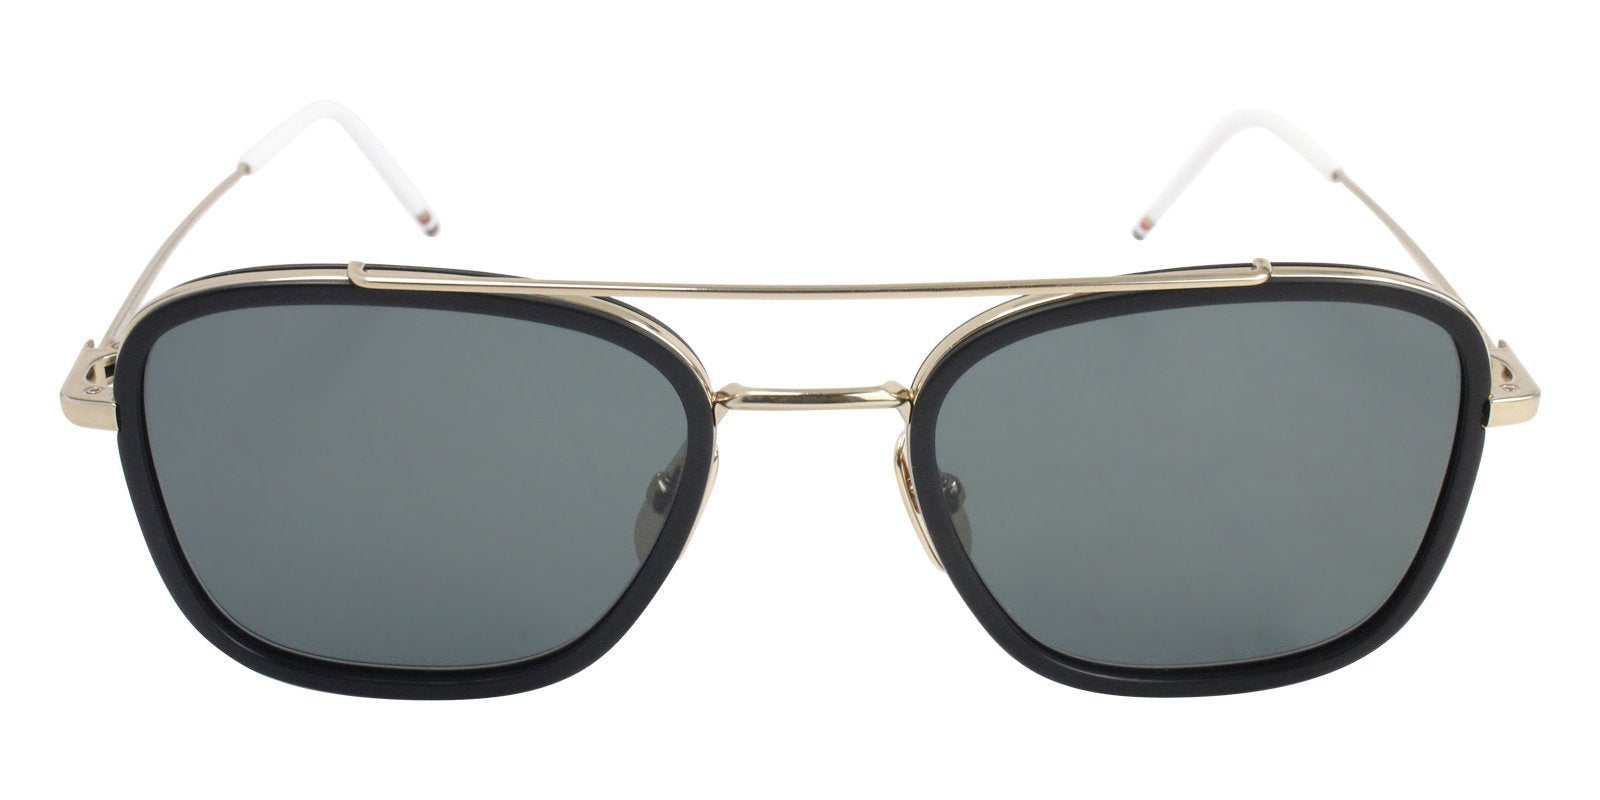 Thom Browne TB-800-A Black / Green Lens Sunglasses-Sunglasses-Designer Eyes